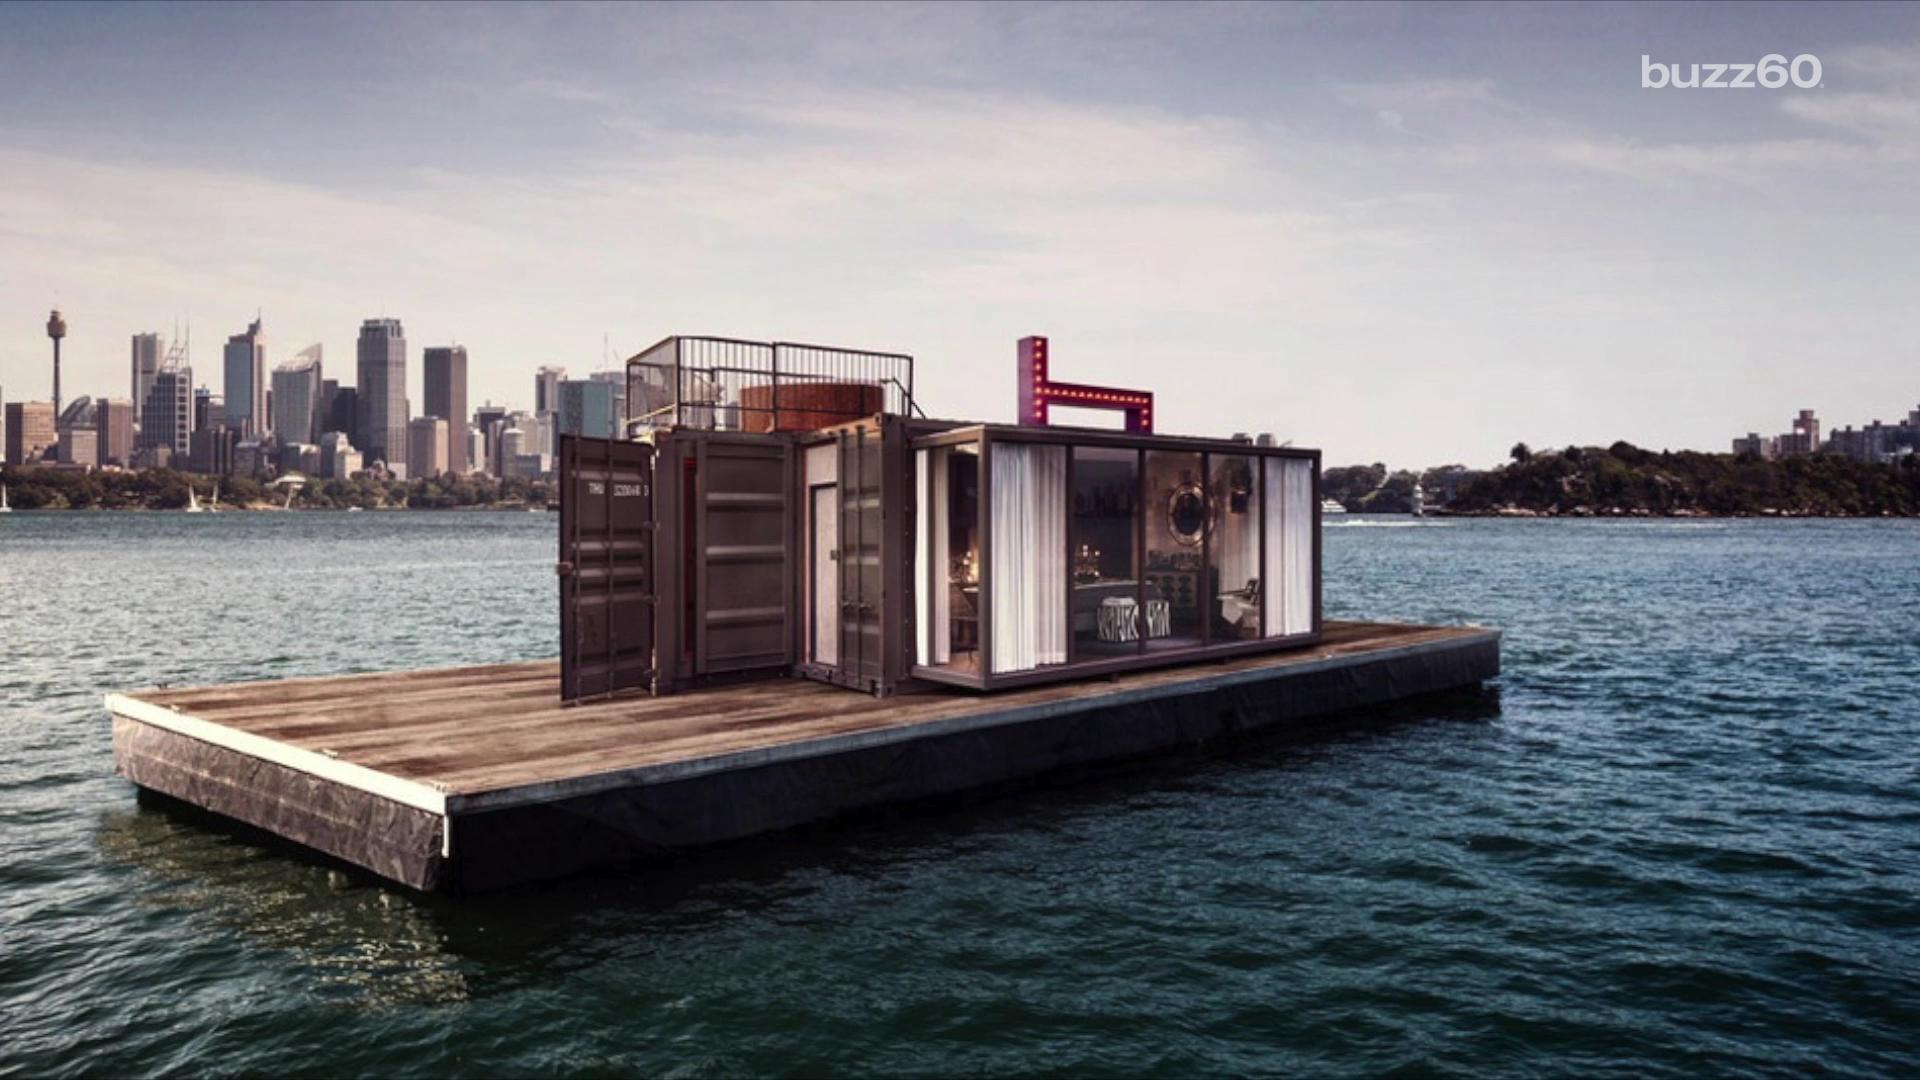 This floating hotel in Sydney Harbor are what dreams are made of